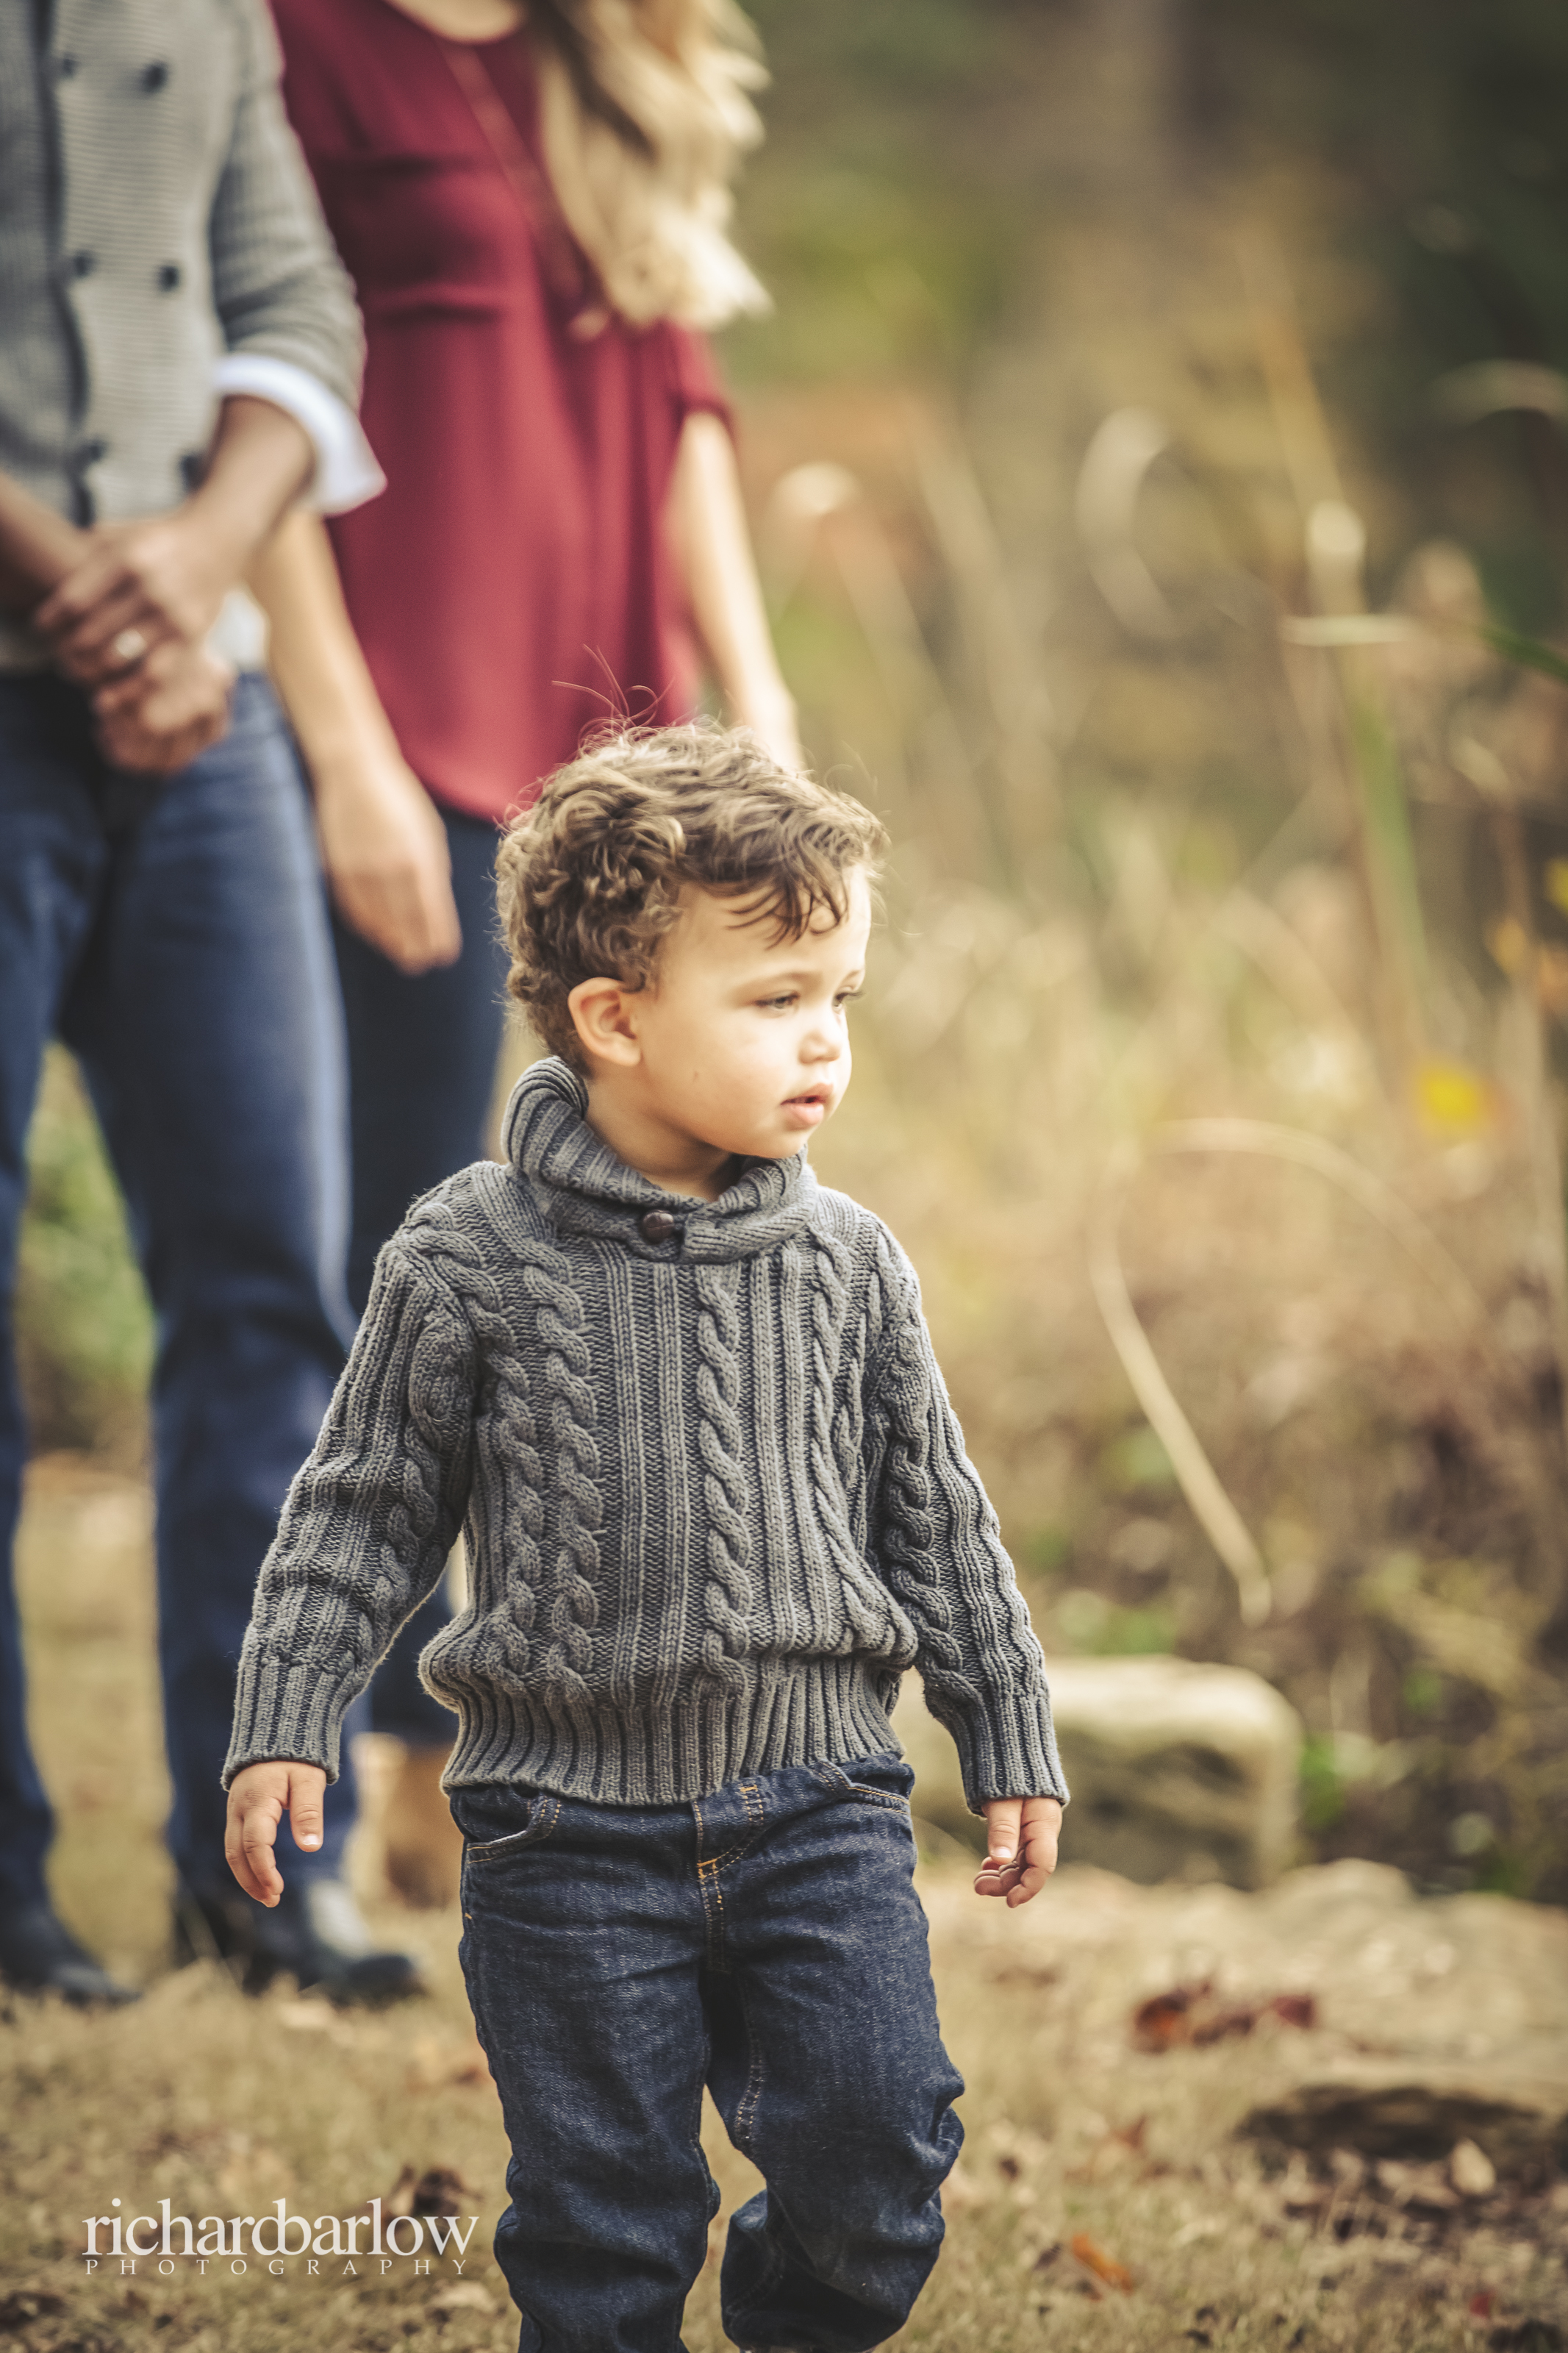 richard barlow photography - Bourne Family Session - Yates Millpond Raleigh-5.jpg